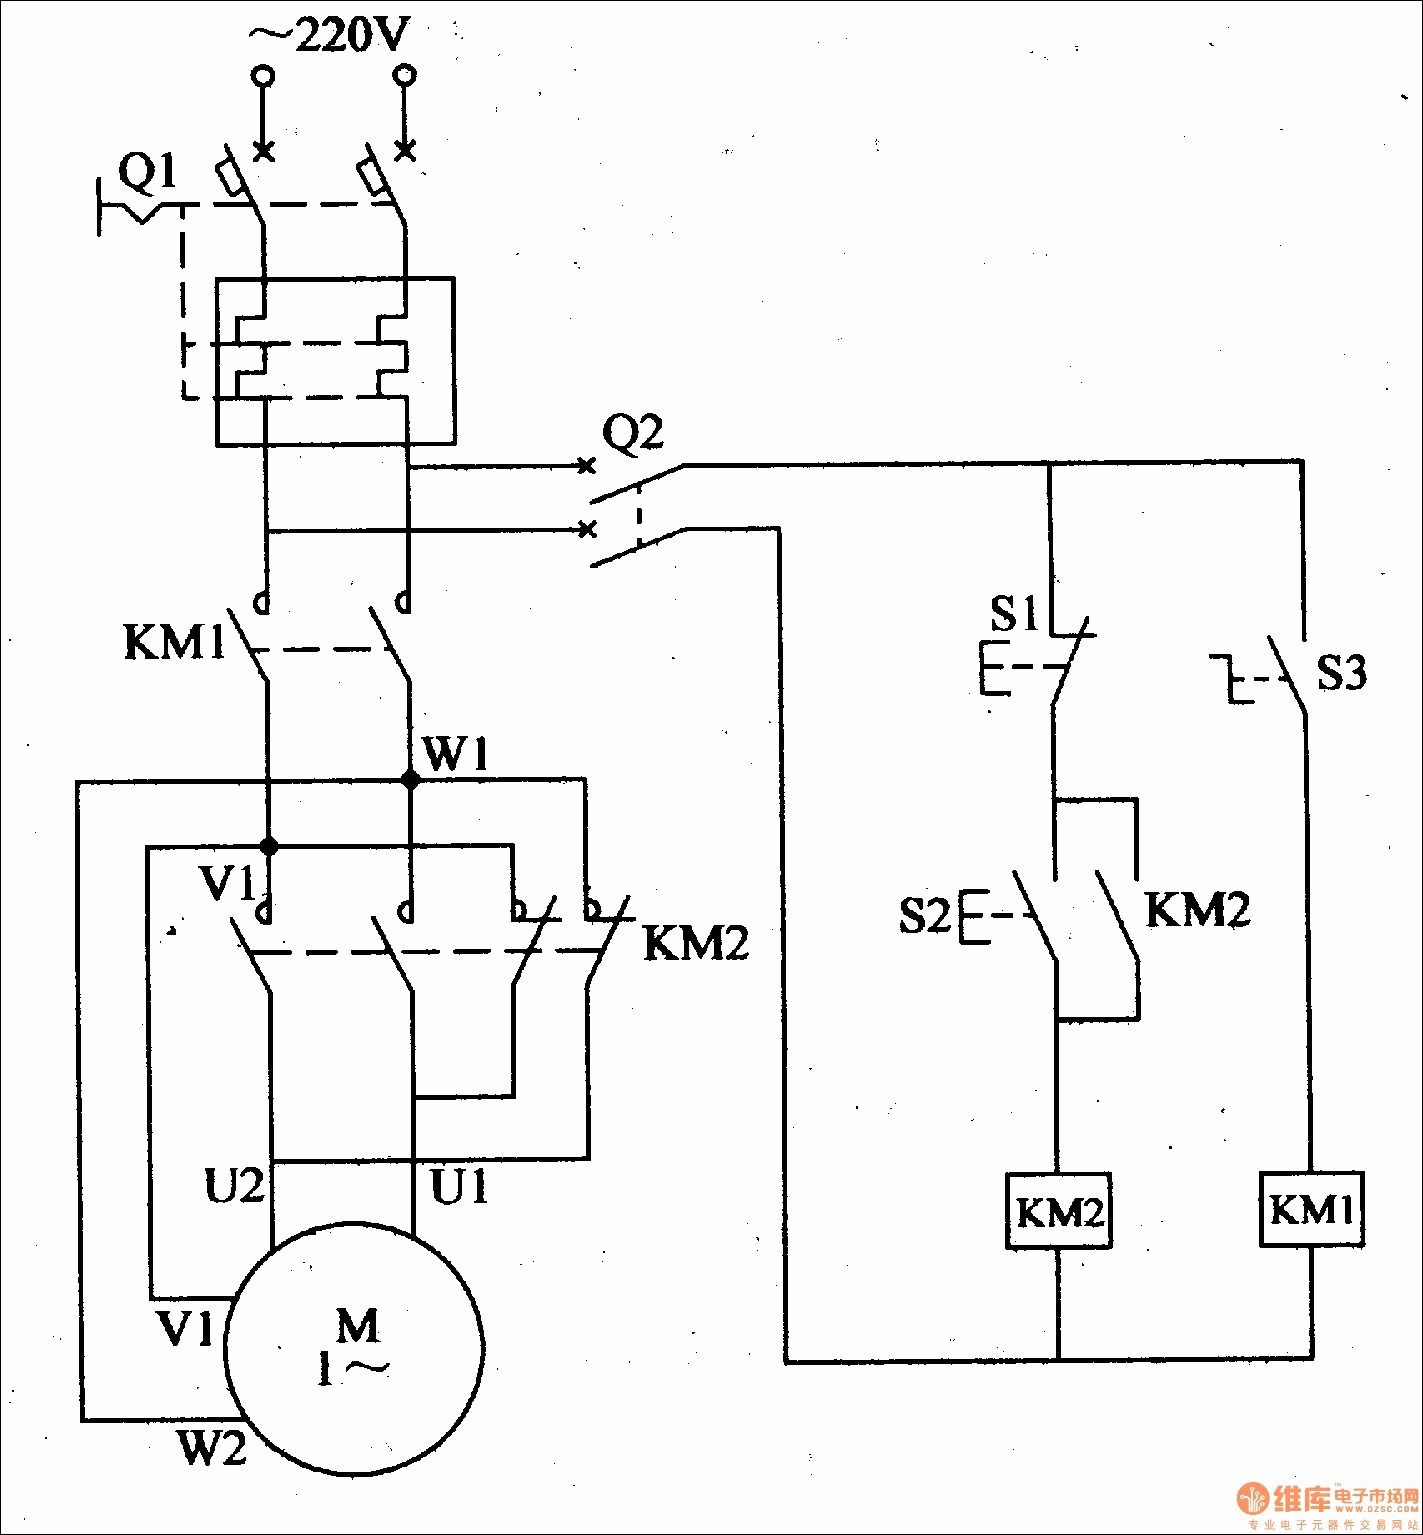 Speaker Mic Wiring Diagram | Best Wiring Library - Smith And Jones Electric Motors Wiring Diagram